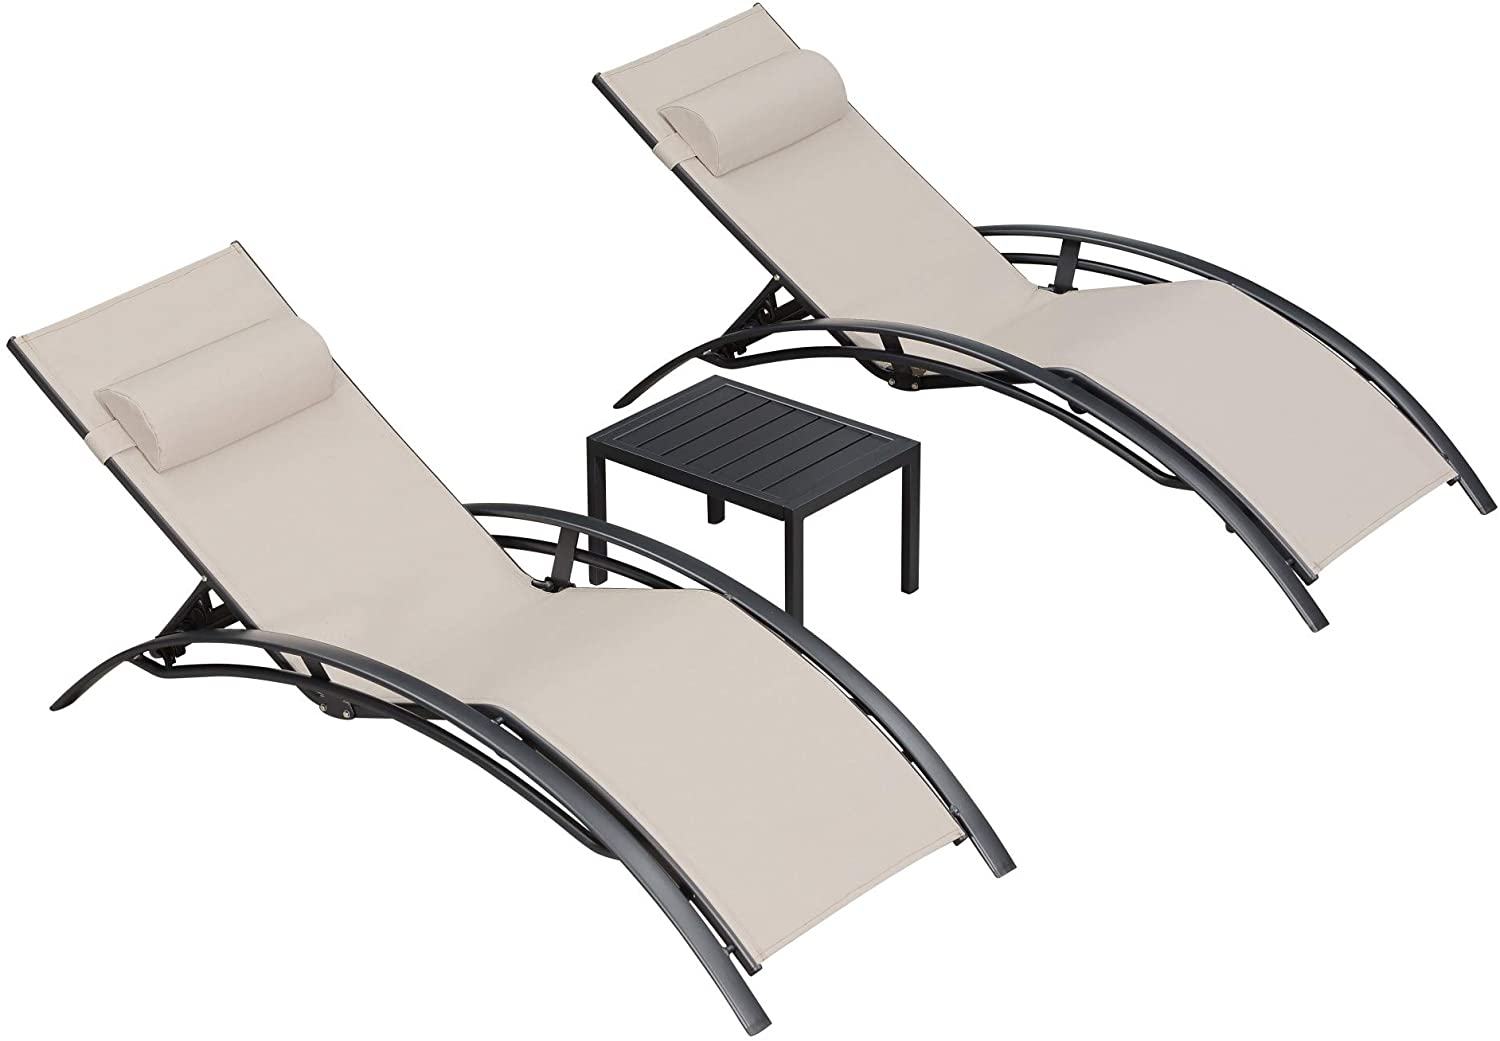 purple leaf patio chaise lounge sets 3 pieces outdoor lounge chair sunbathing chair with headrest and table for all weather beige walmart com